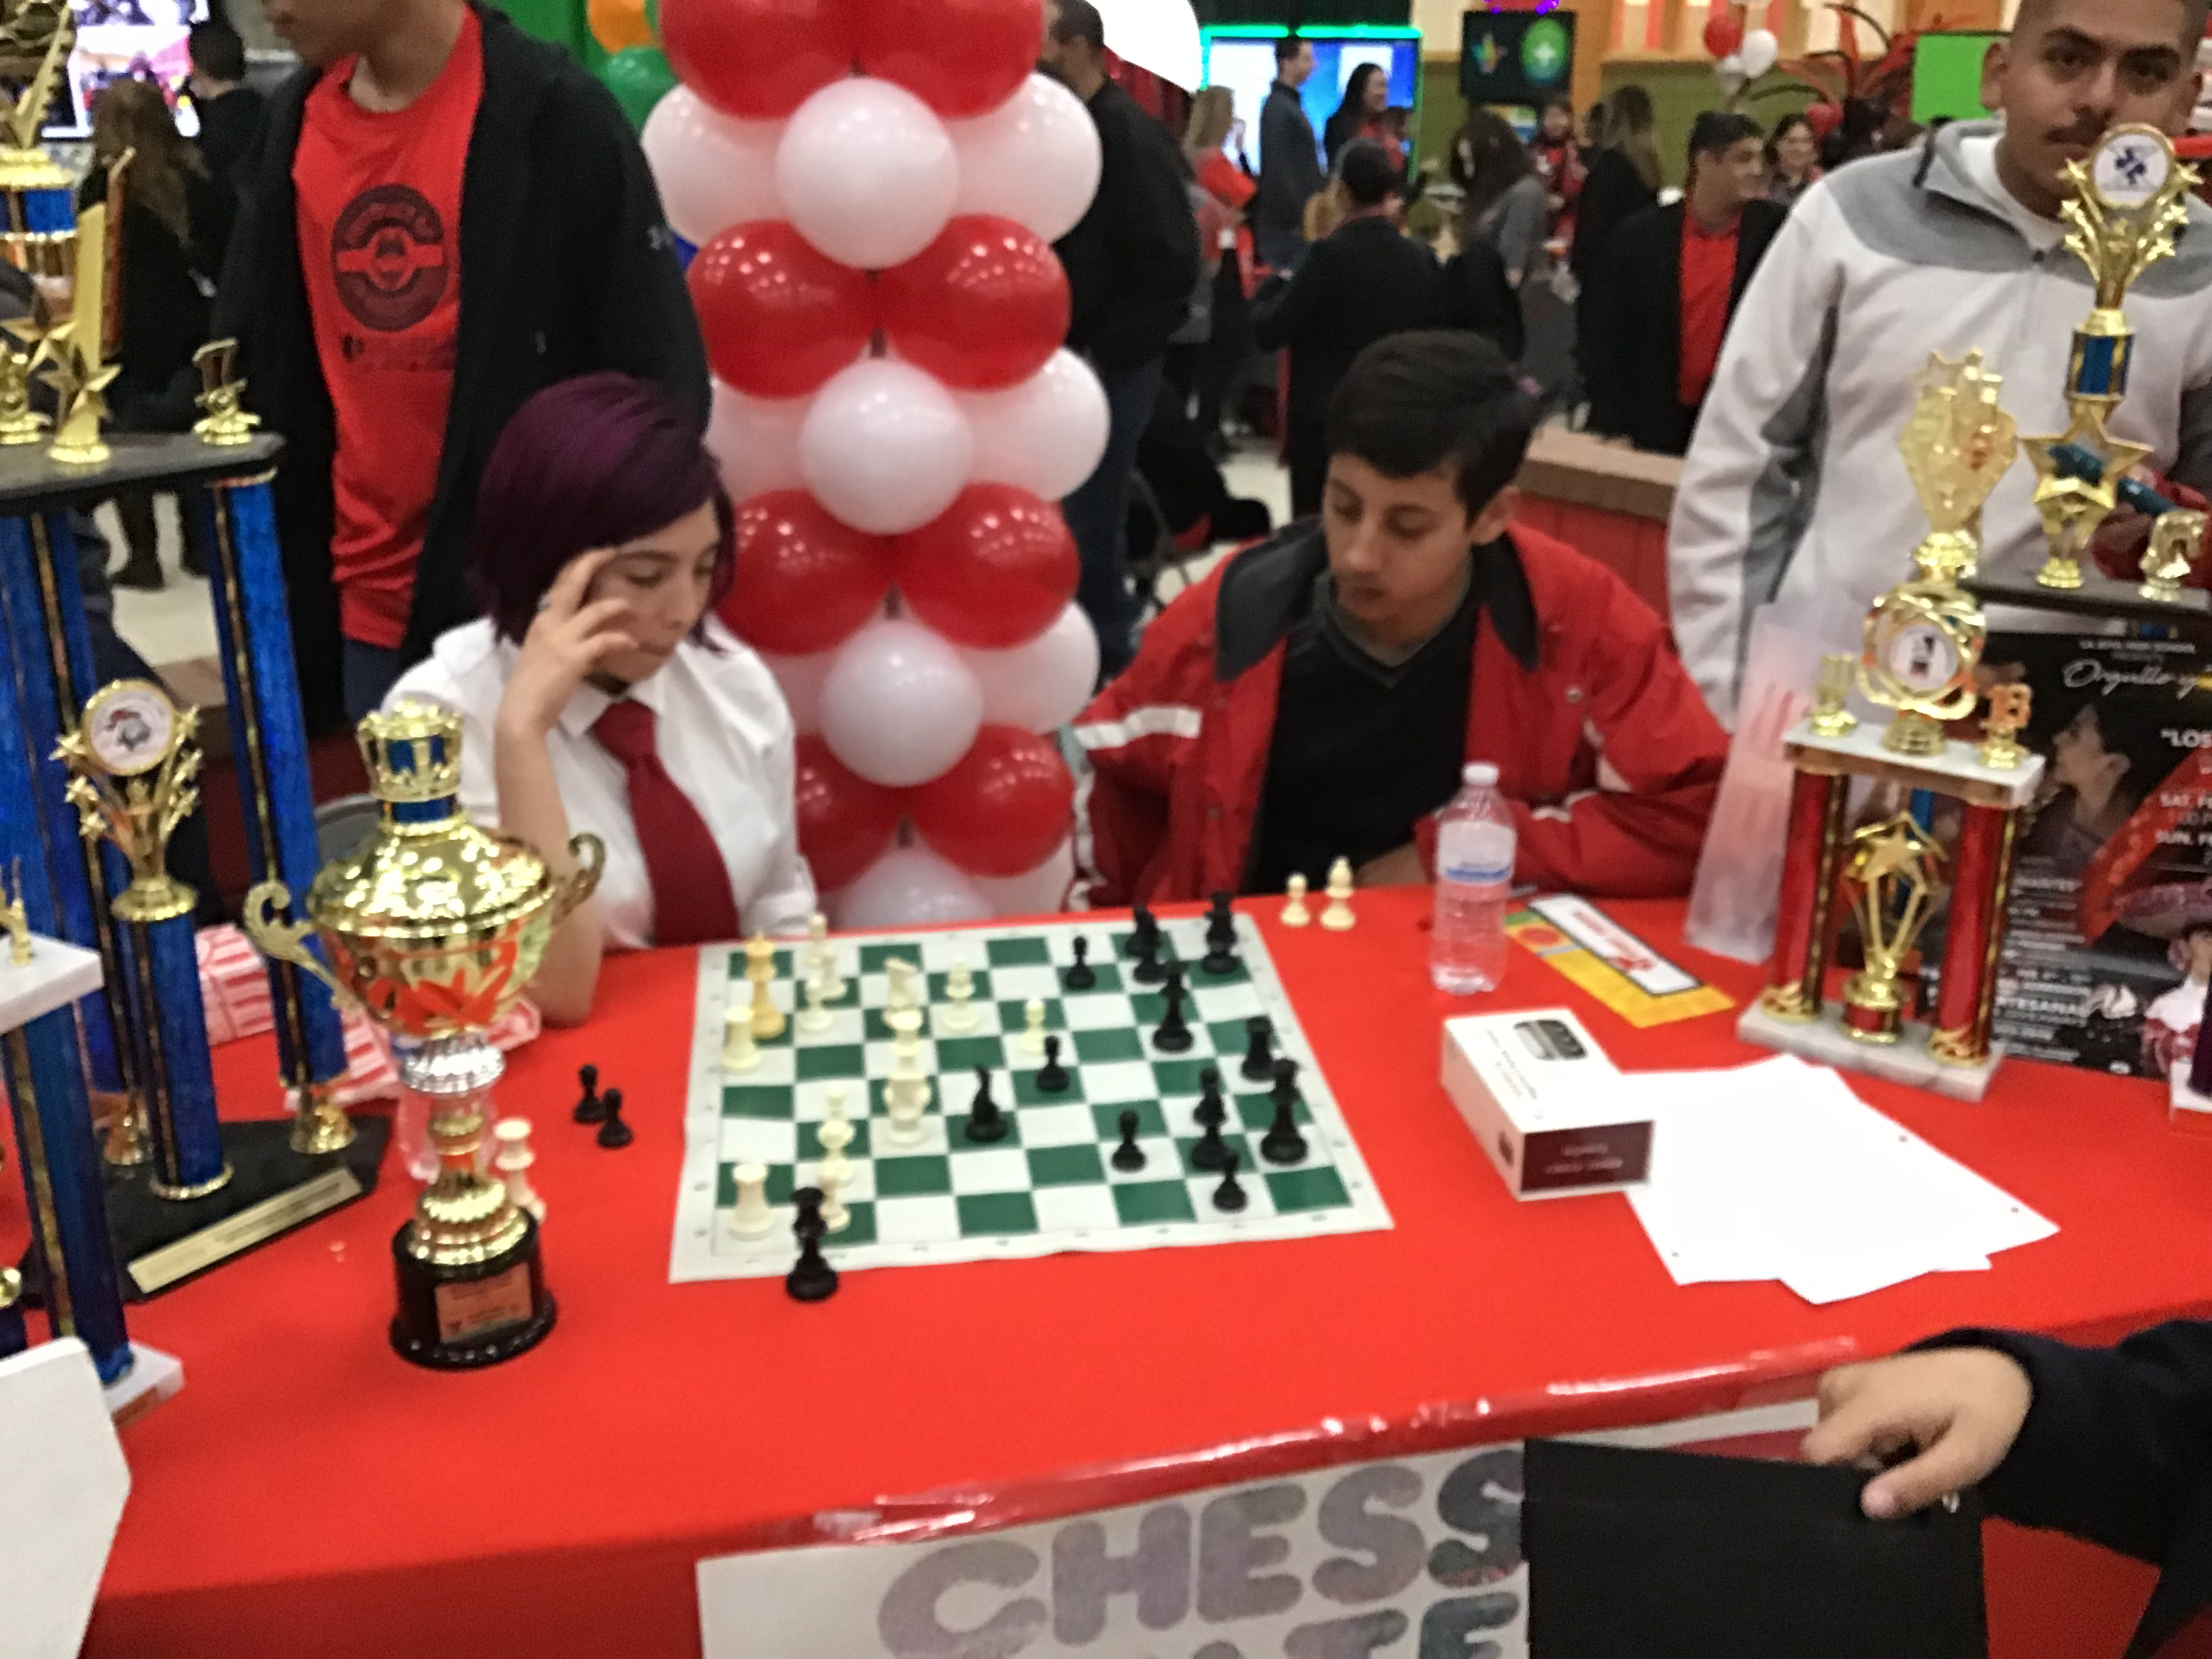 Chess Team Showing Off